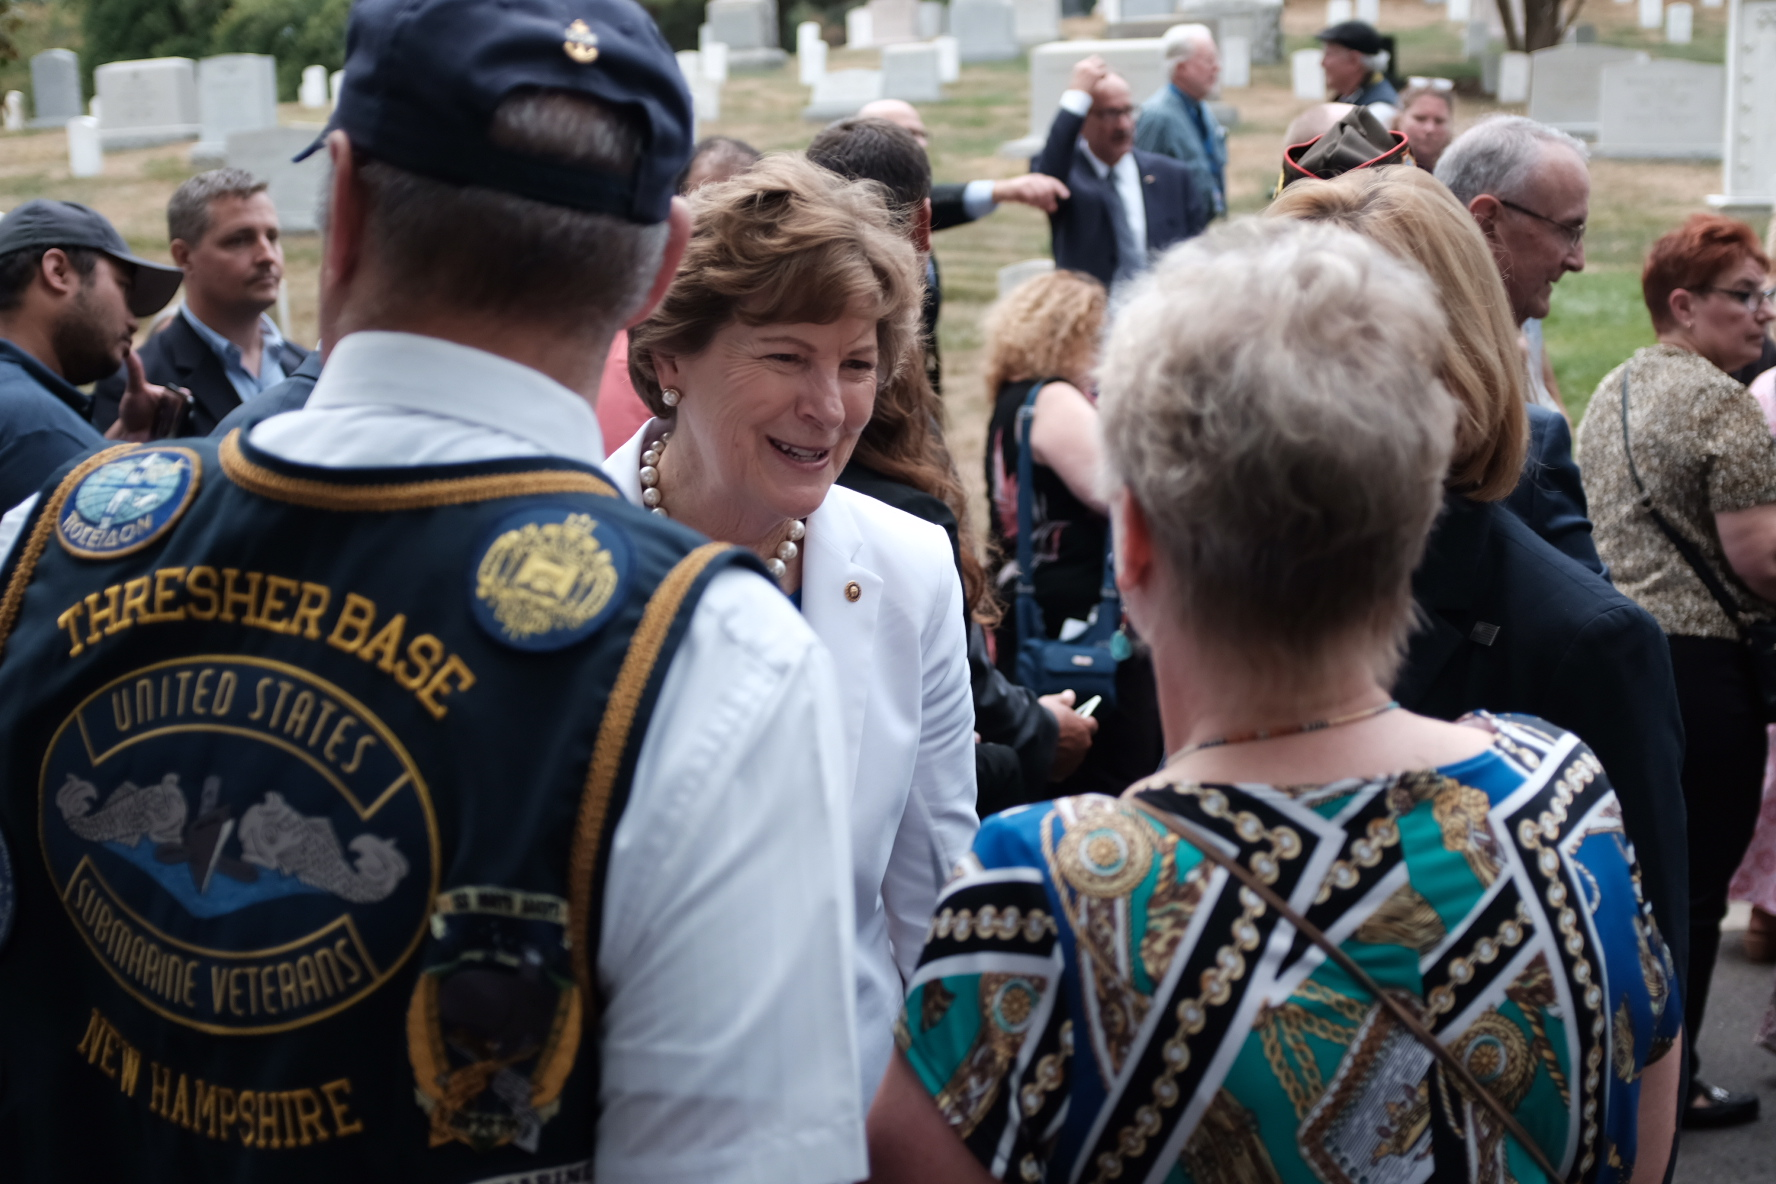 Shaheen talking to guests at Thresher ceremony